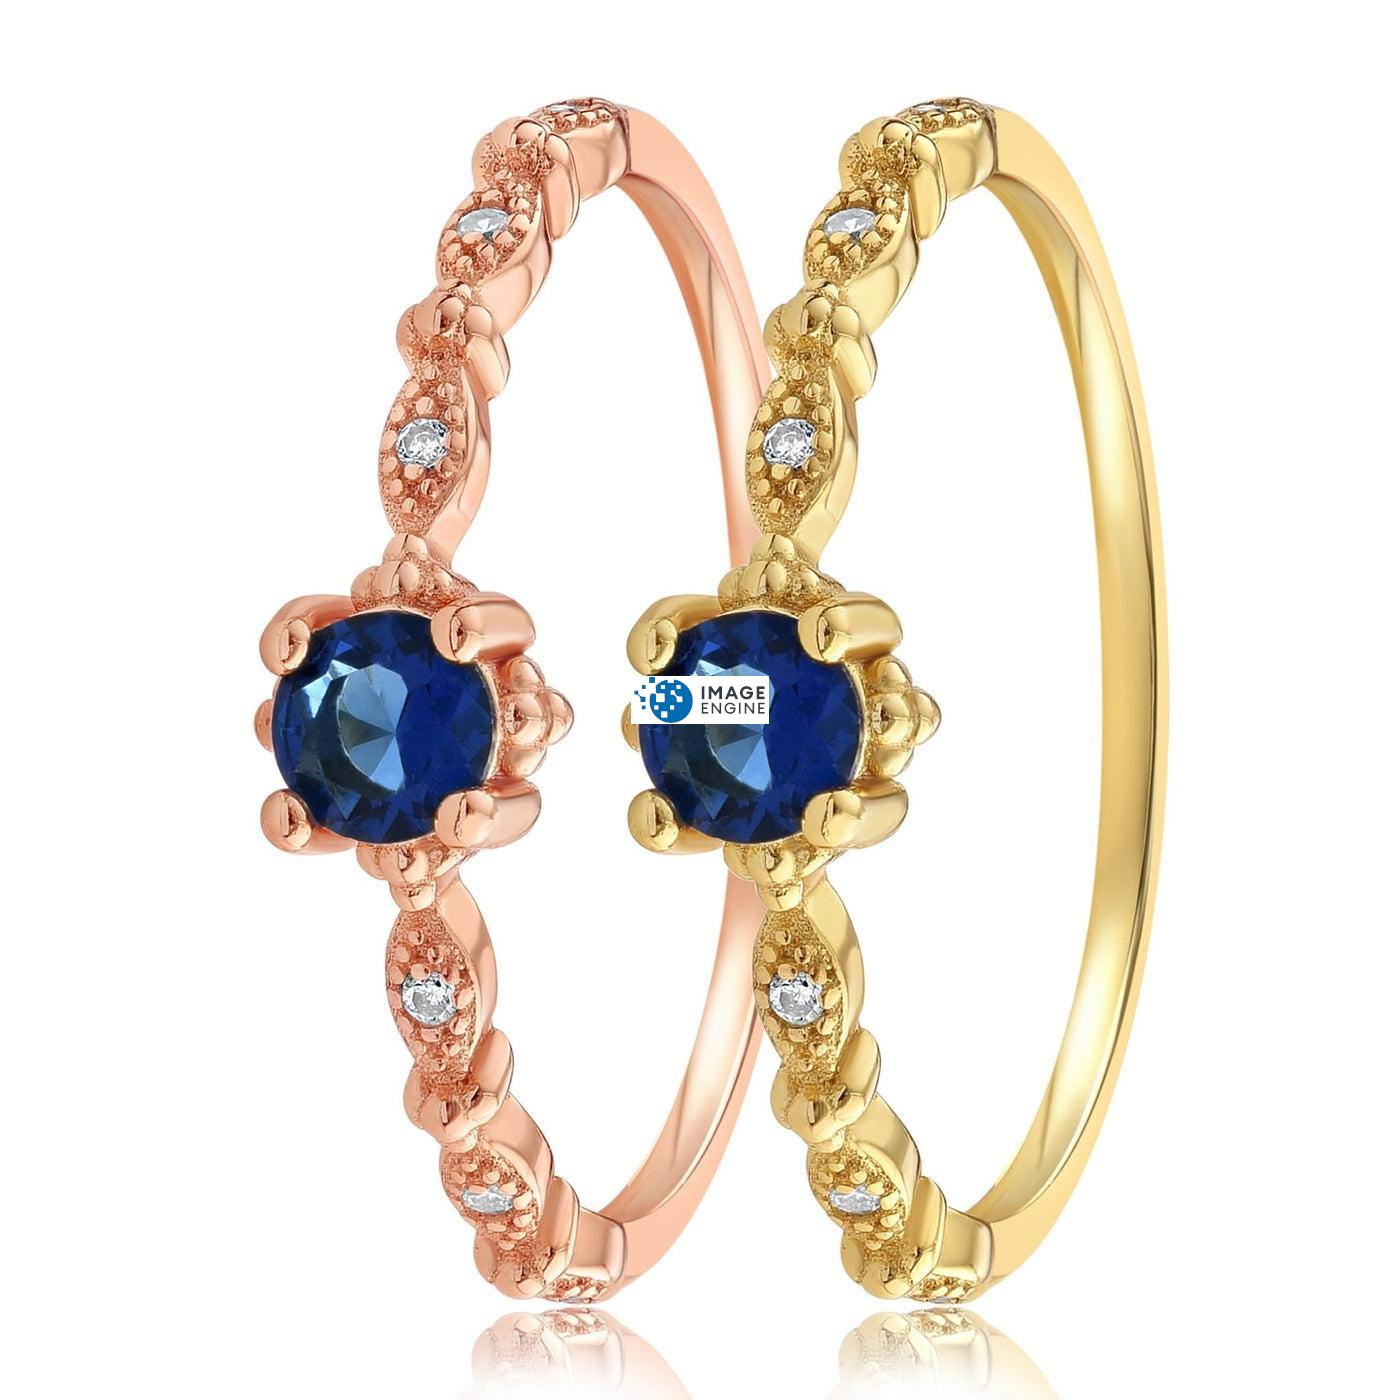 Garen Ring Blue Gemstone - Side by Side - 18K Yellow Gold Vermeil and 18K Rose Gold Vermeil